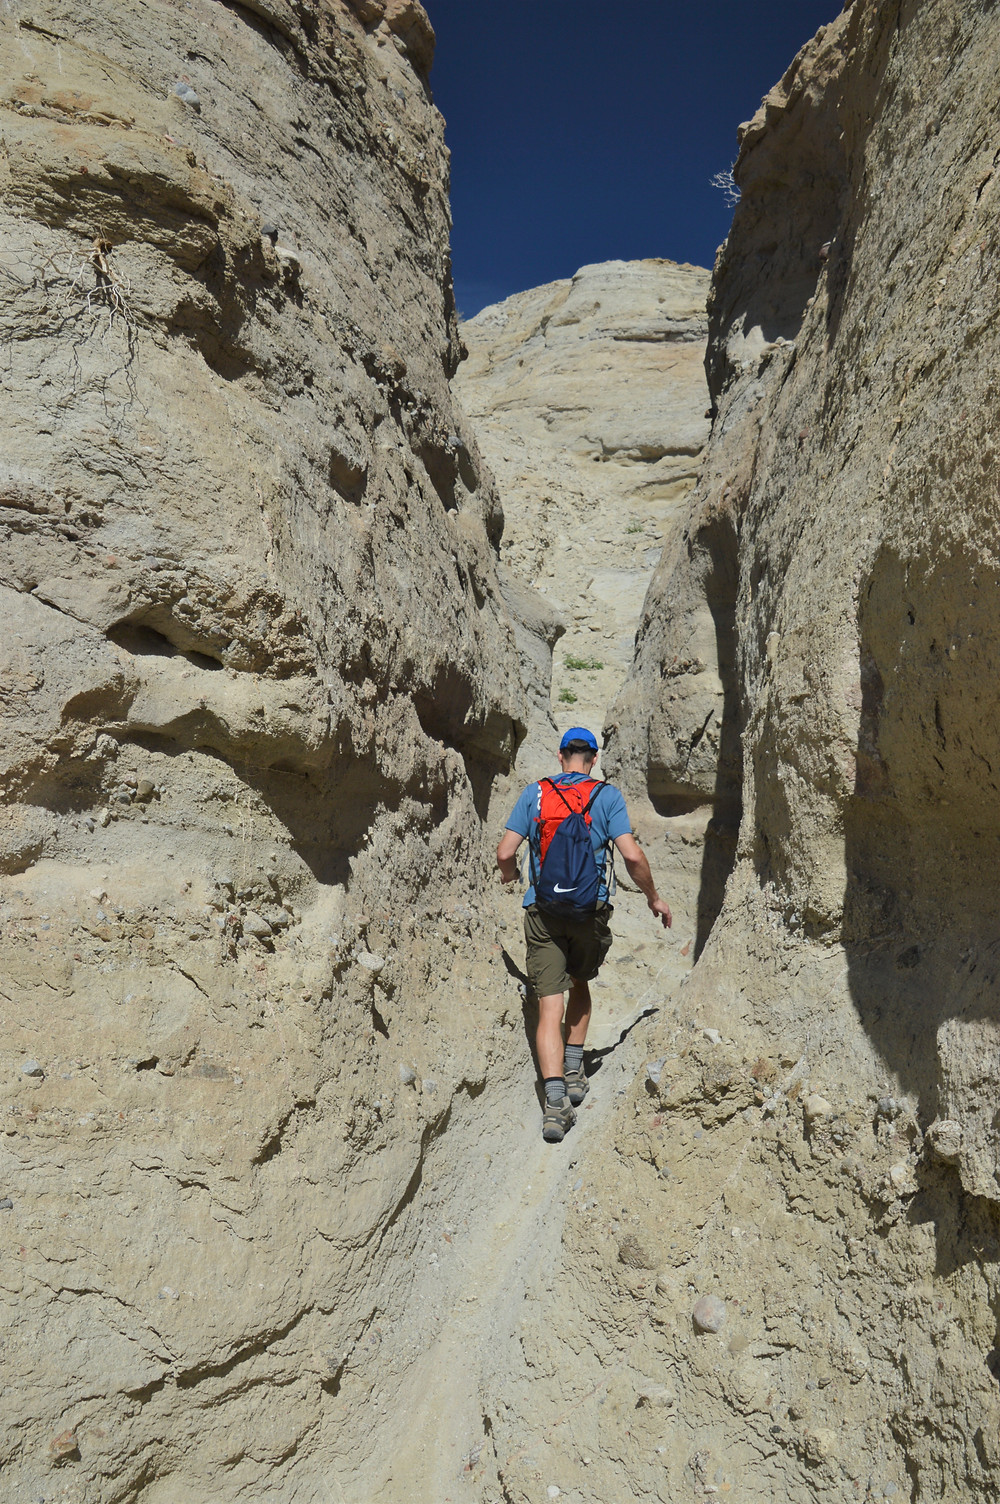 Hiking side slot canyons wash along the Calcite Mine Loop at Anza-Borrego State Park